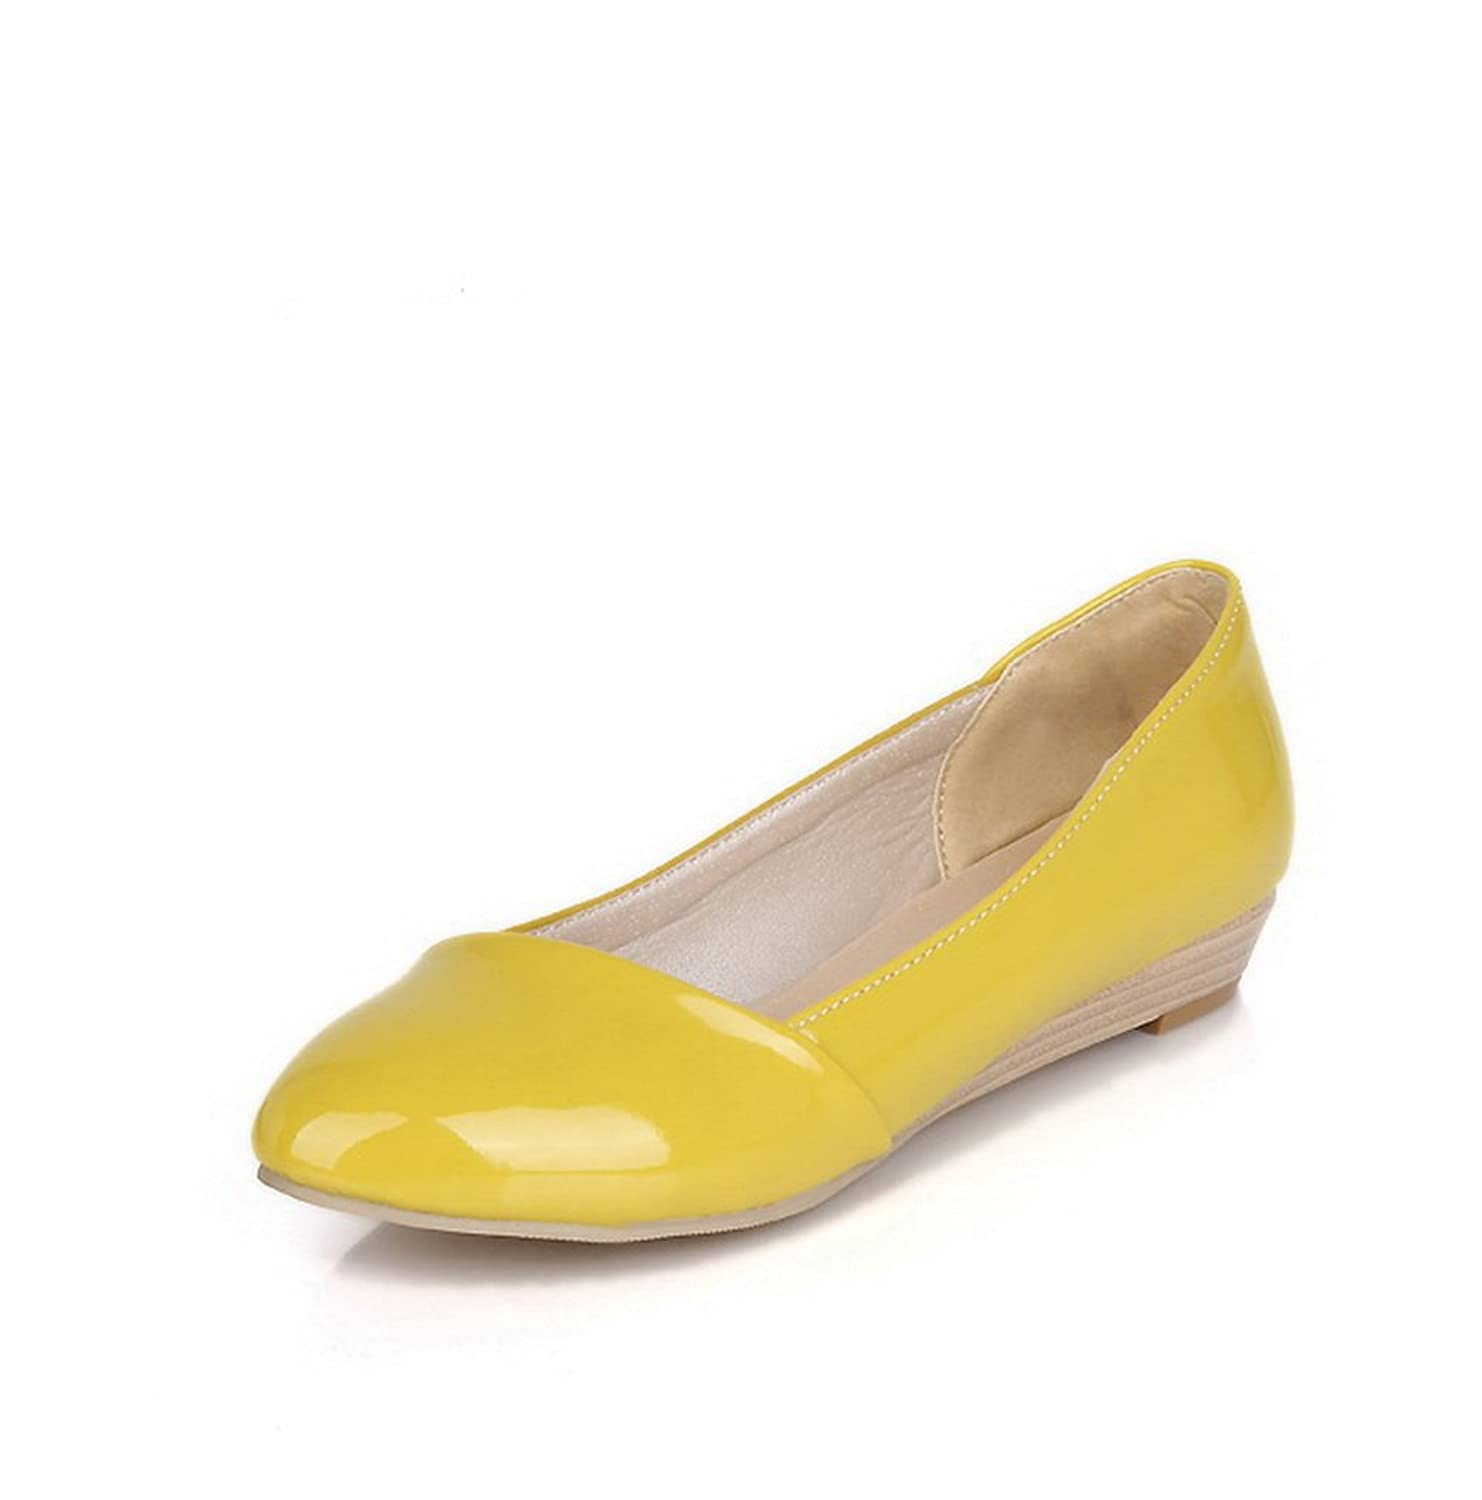 WeiPoot Women's Low-Heels Round Closed Toe PU Pumps-Shoes